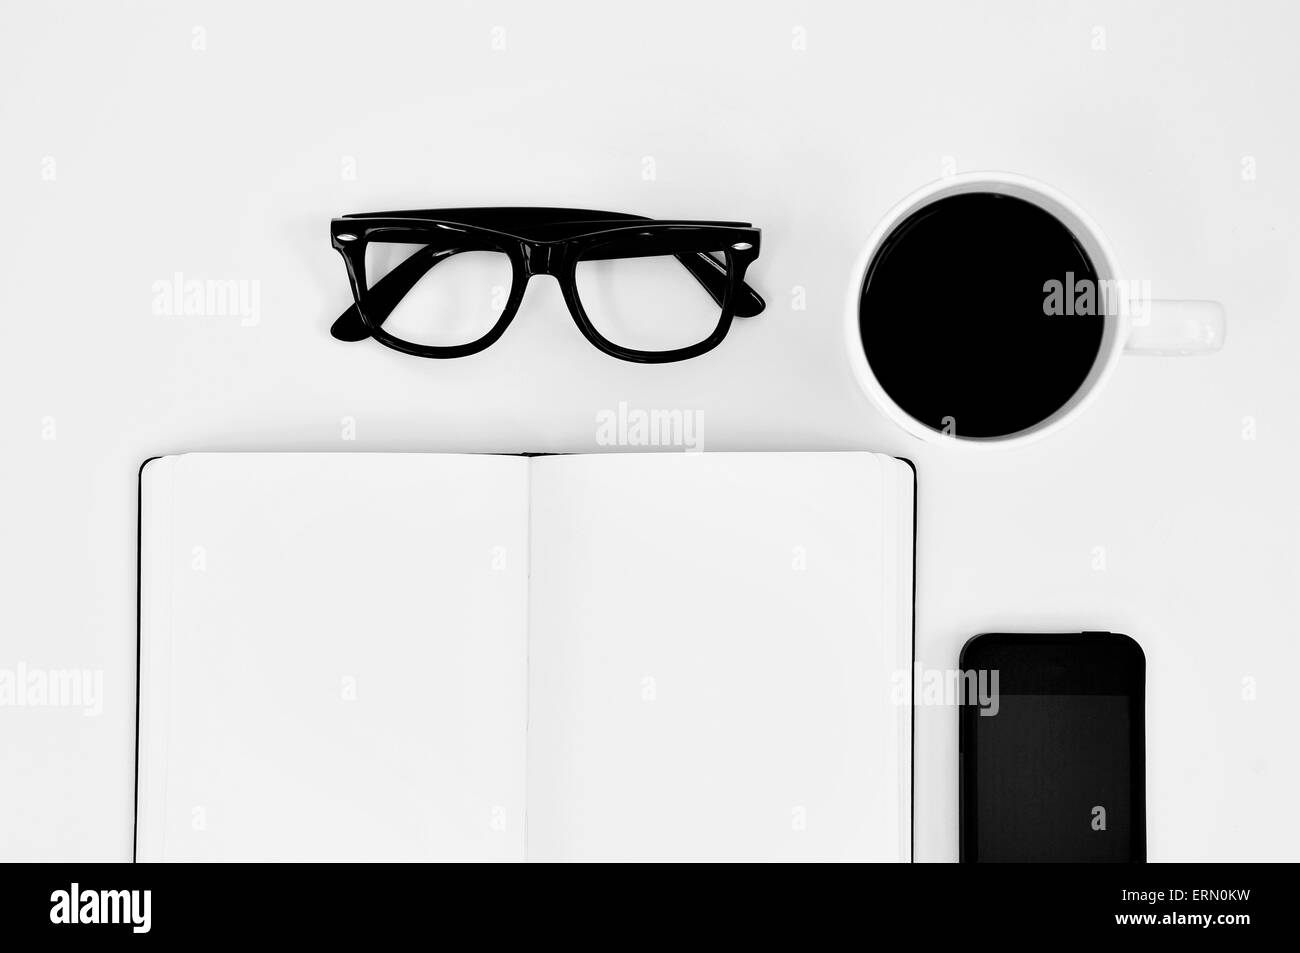 high-angle shot of a blank notebook, a pair of black plastic-rimmed eyeglasses, a cup of coffee and a smartphone - Stock Image